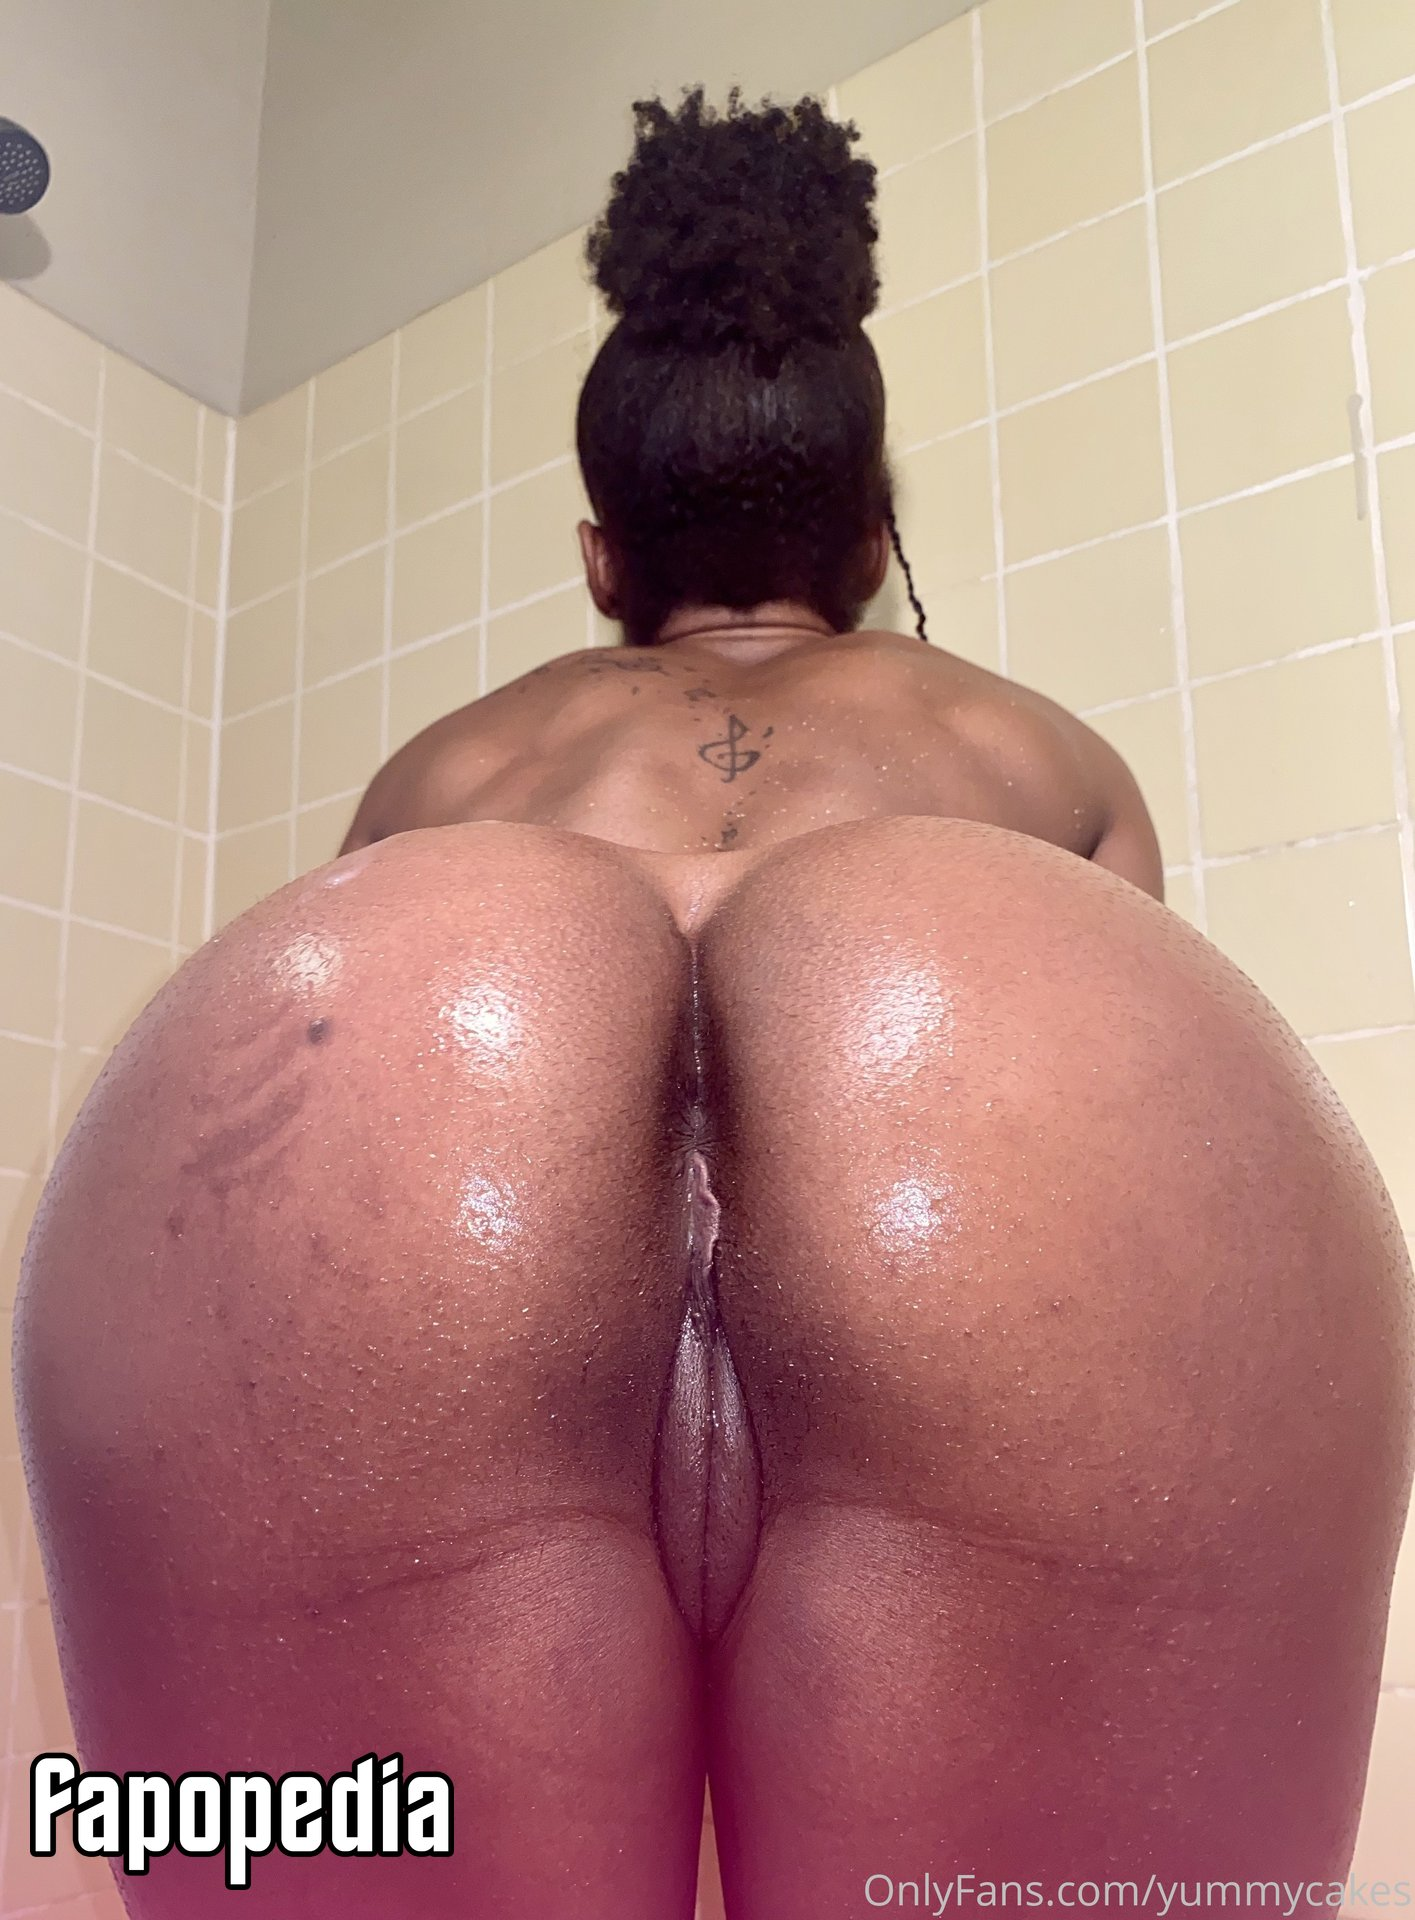 Yummycakes Nude OnlyFans Leaks